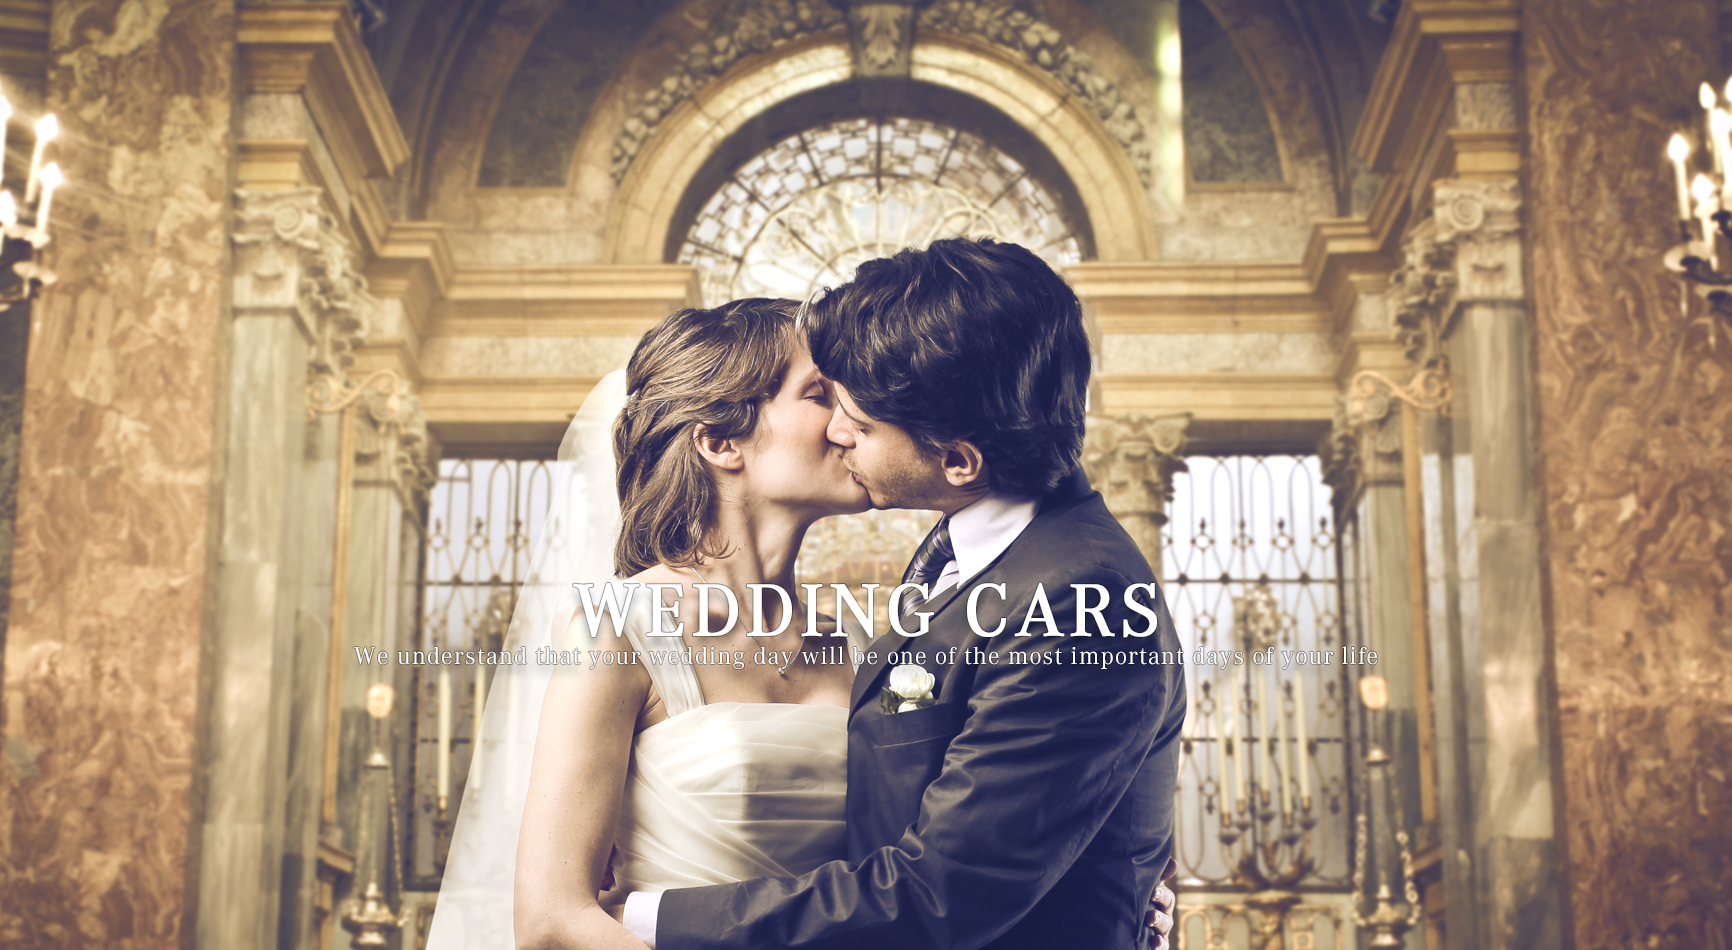 hm-wedding-banner-3